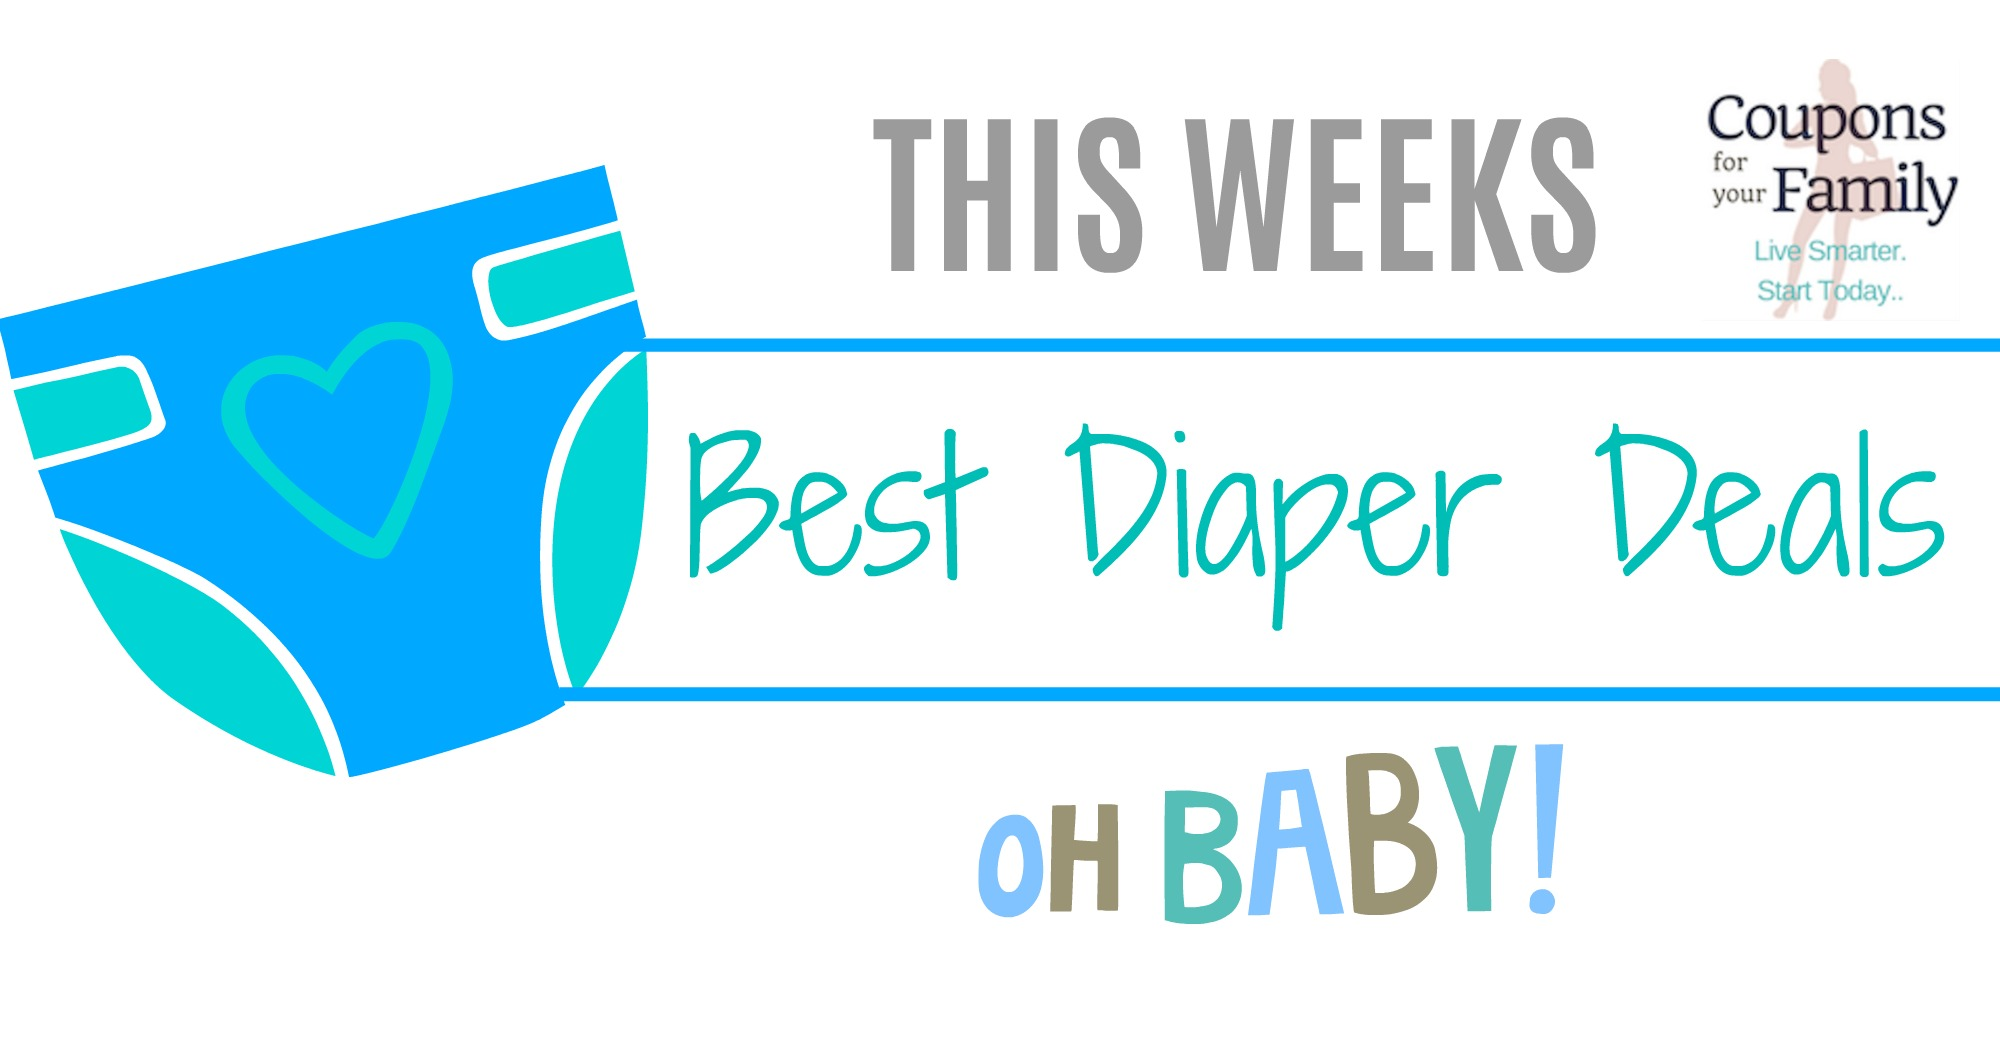 See Diapers on Sale along with the Best Diaper Deals this week!